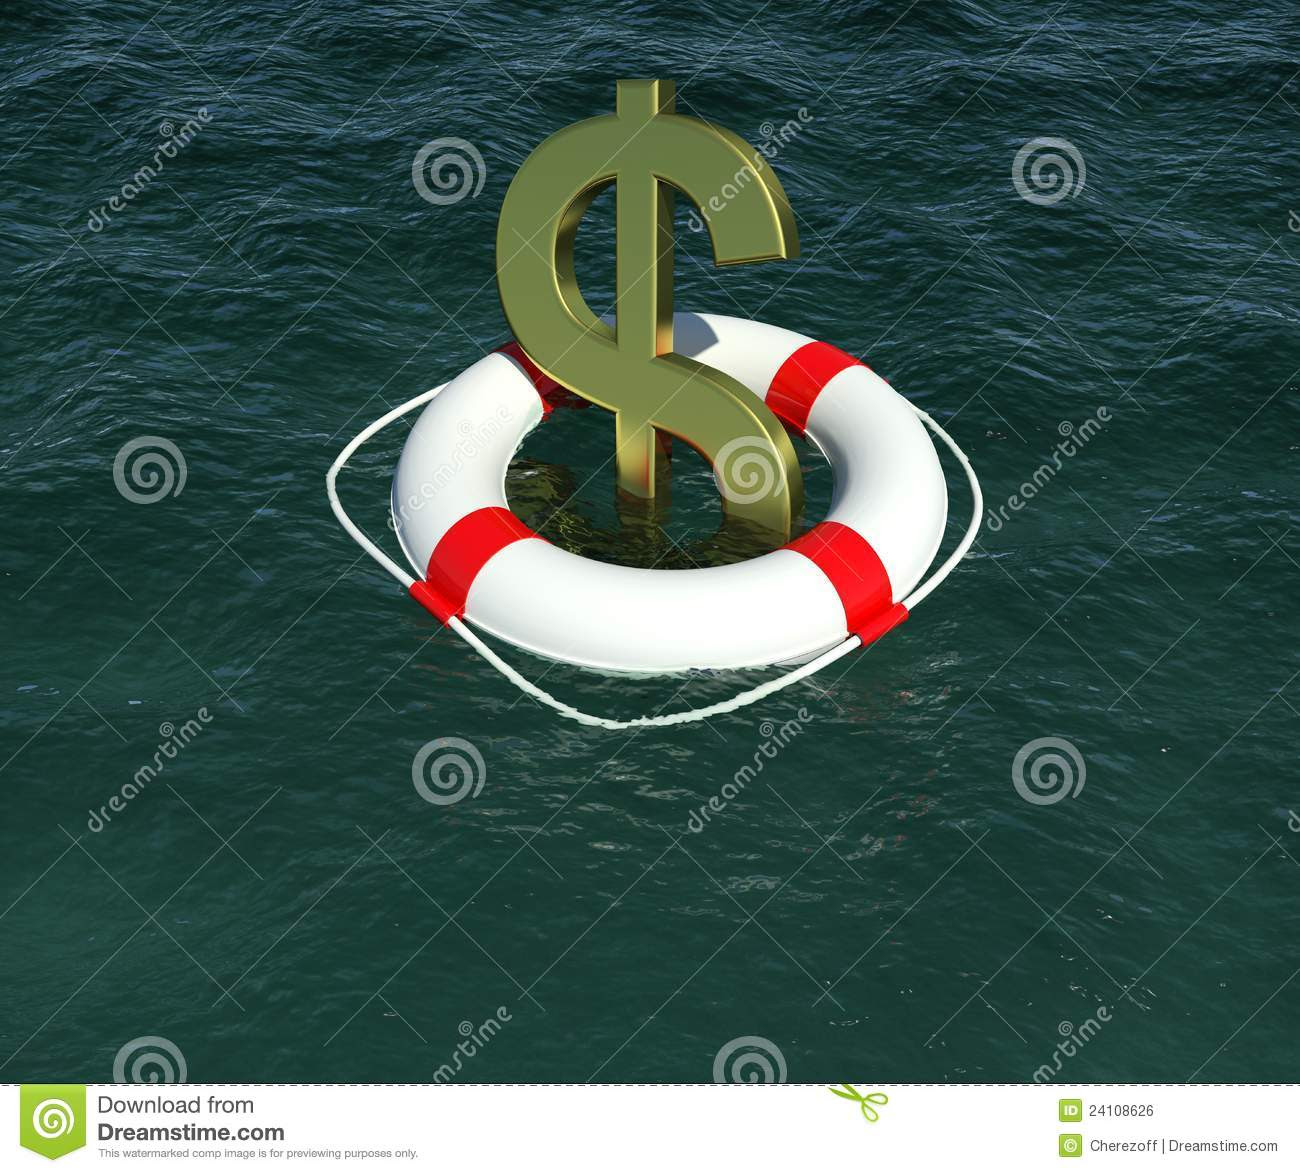 Dollar sign in a lifebuoy in the water. (Credit: 3d rendering © Cherezoff | Dreamstime.com)